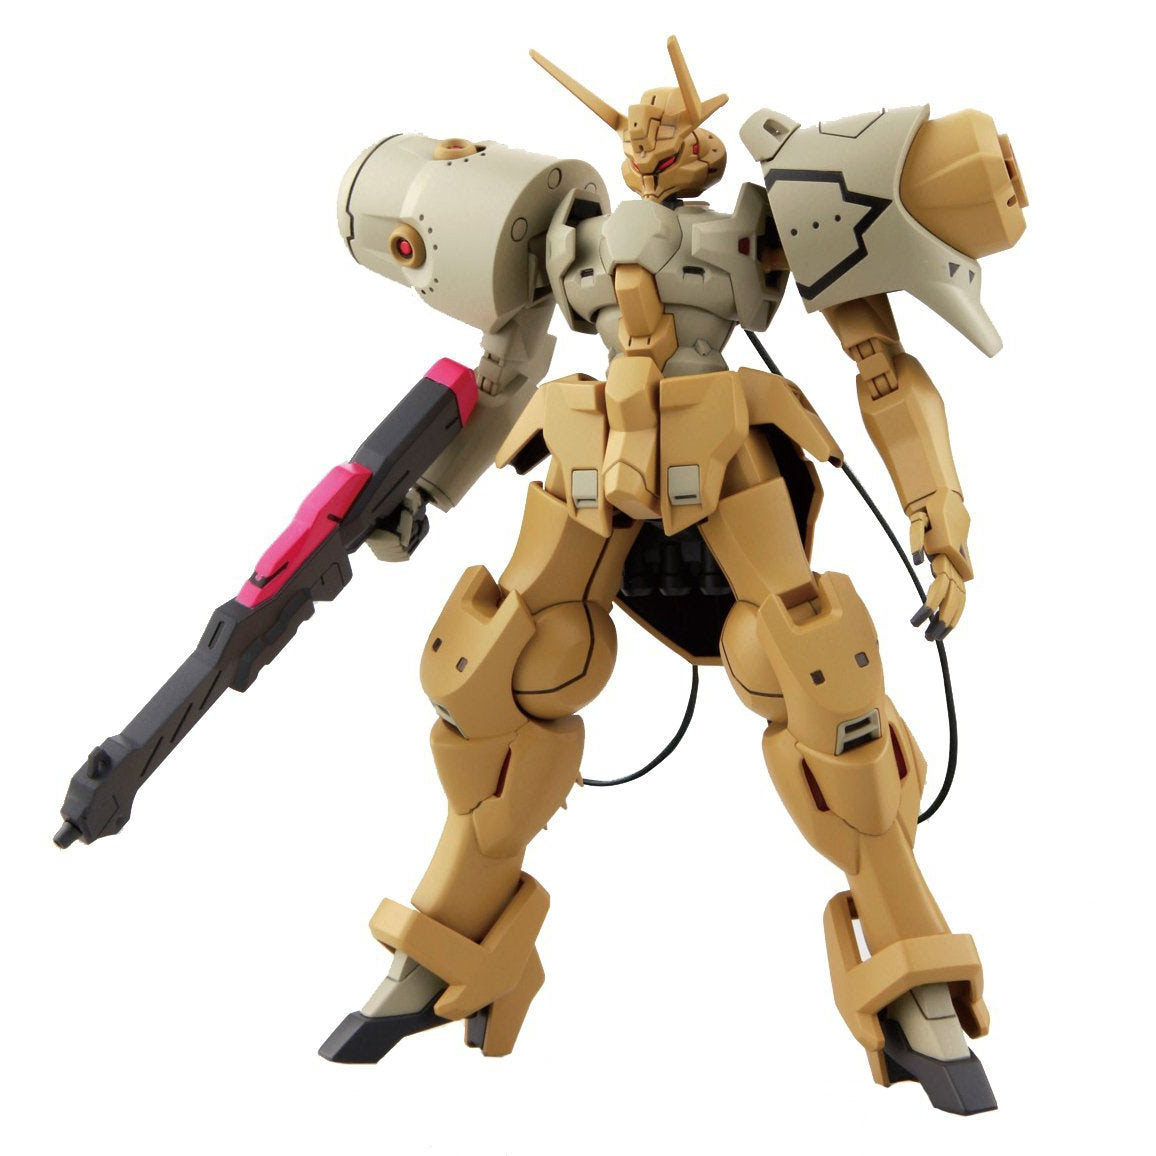 Image of HG G-Recox Gastima Gundam Reconguista in G Action Figure (1/144 Scale)